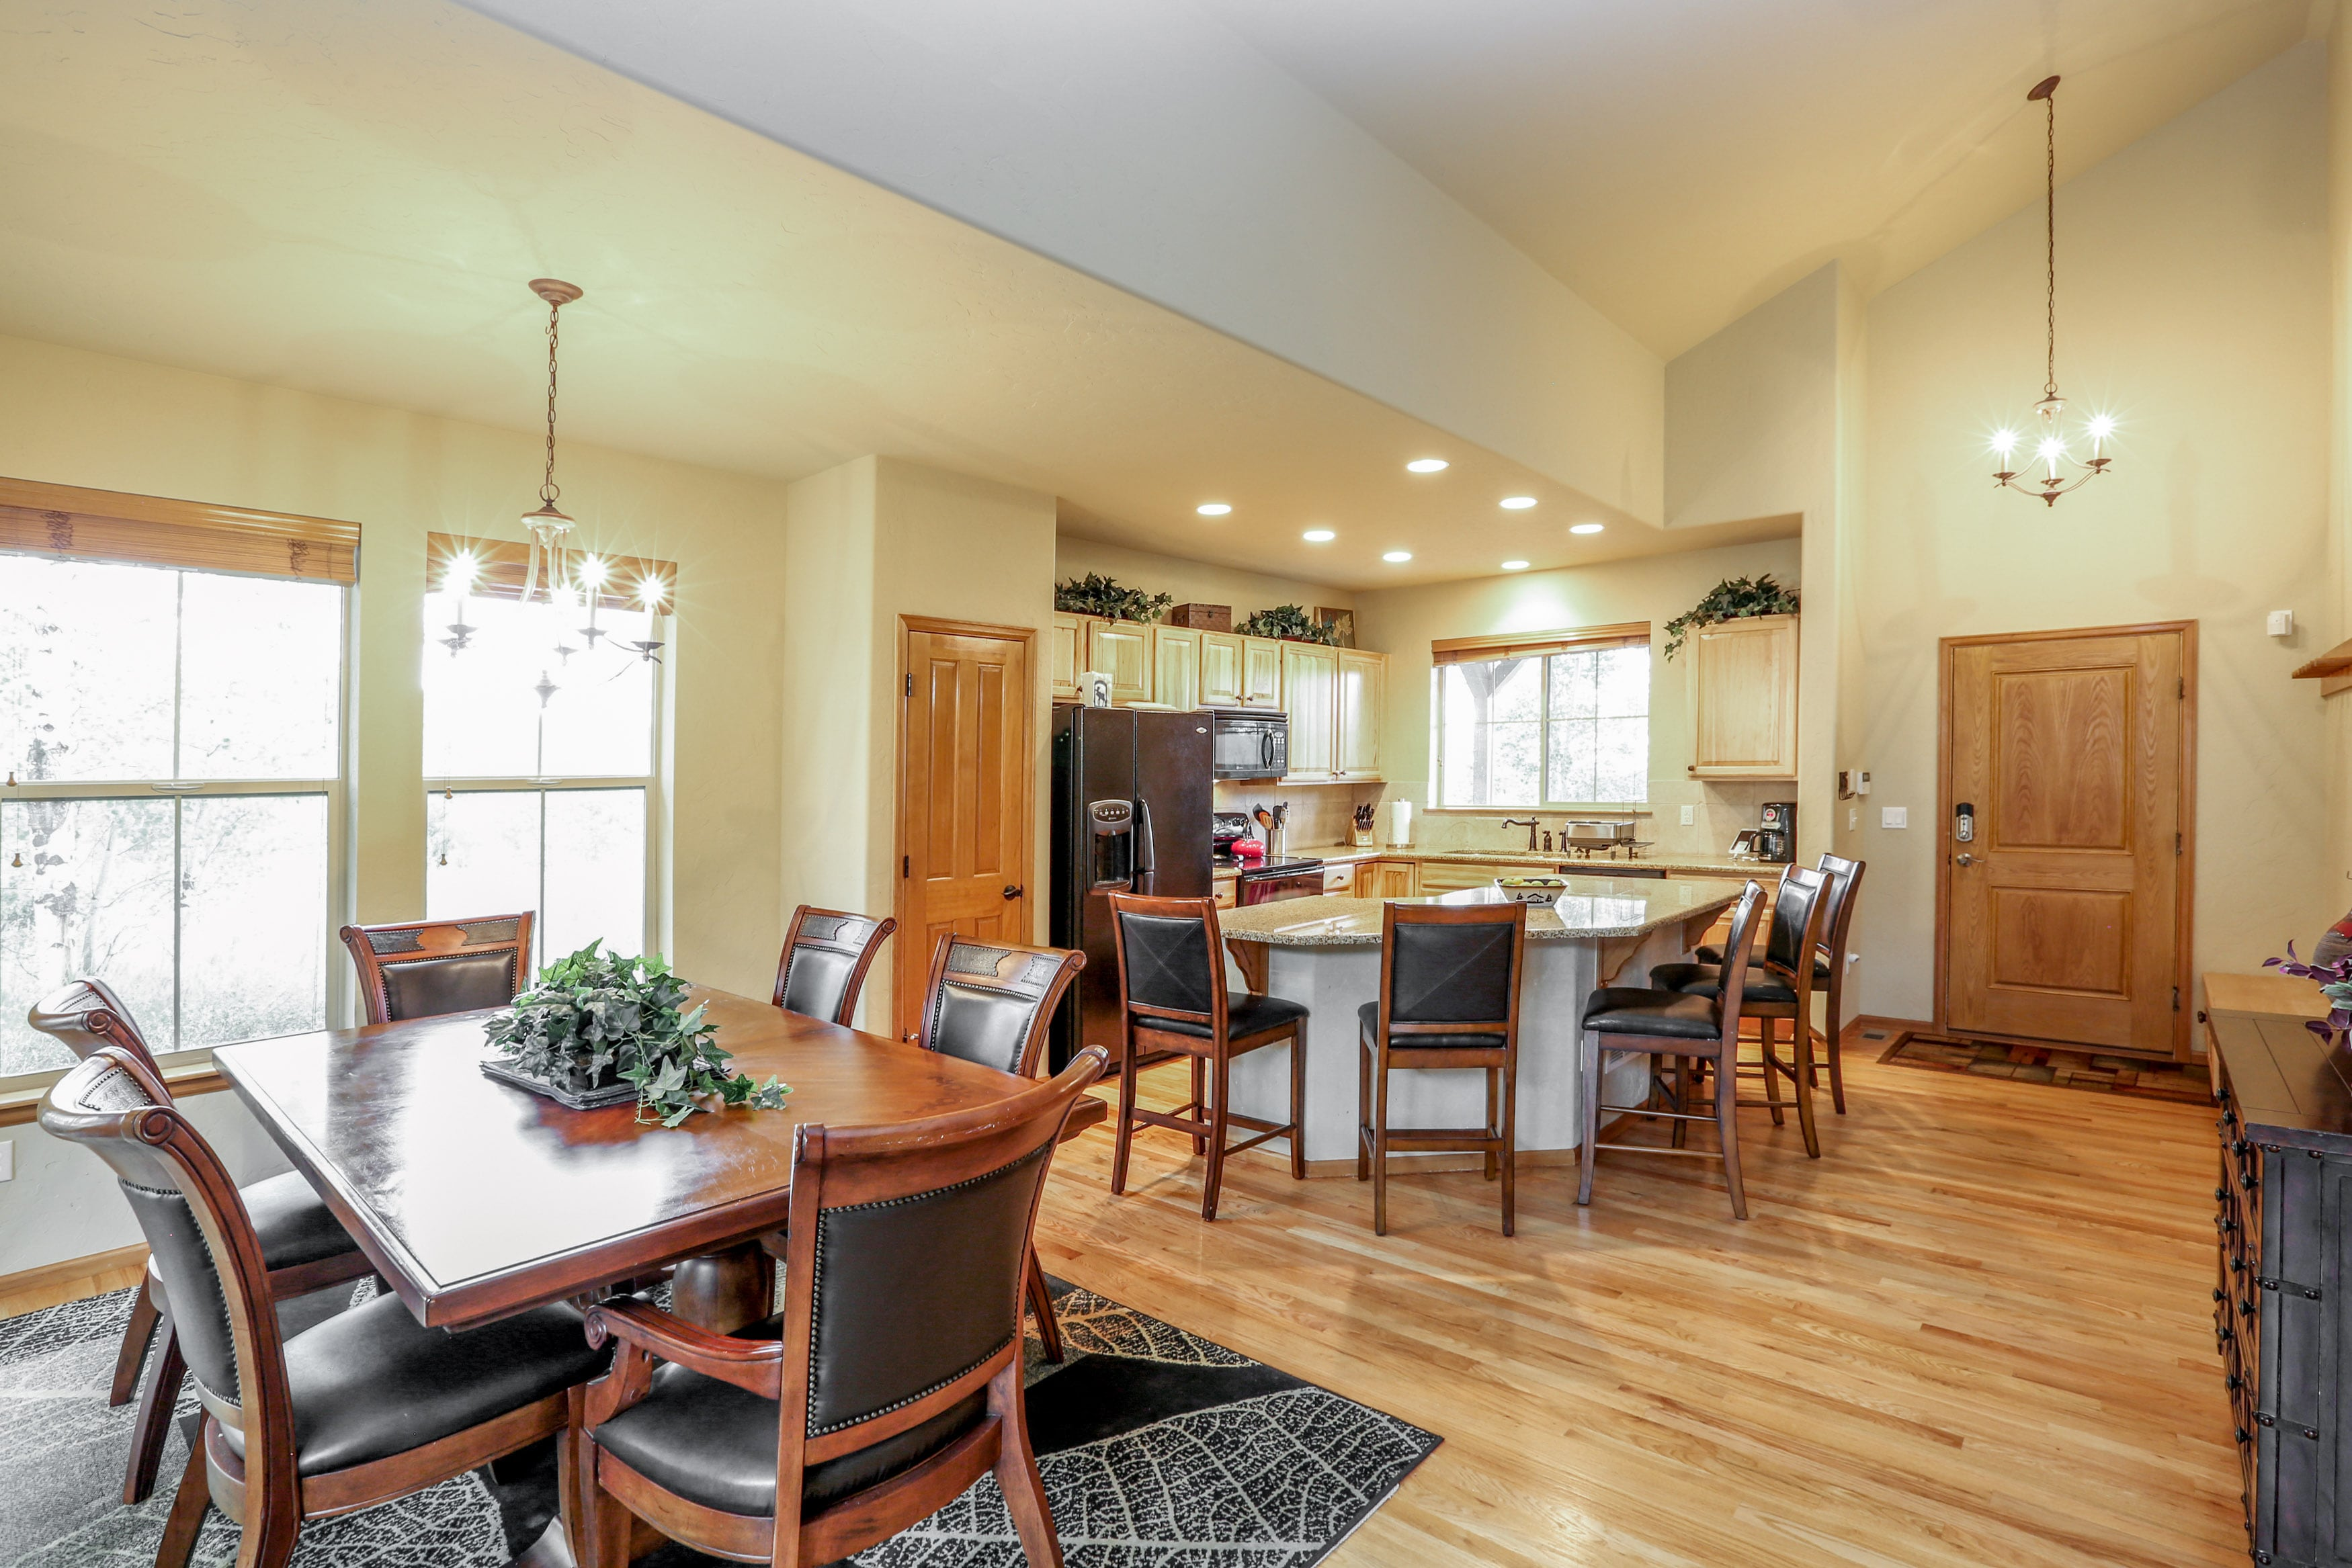 Vaulted ceilings and light pinewood floors make the space feel roomy.